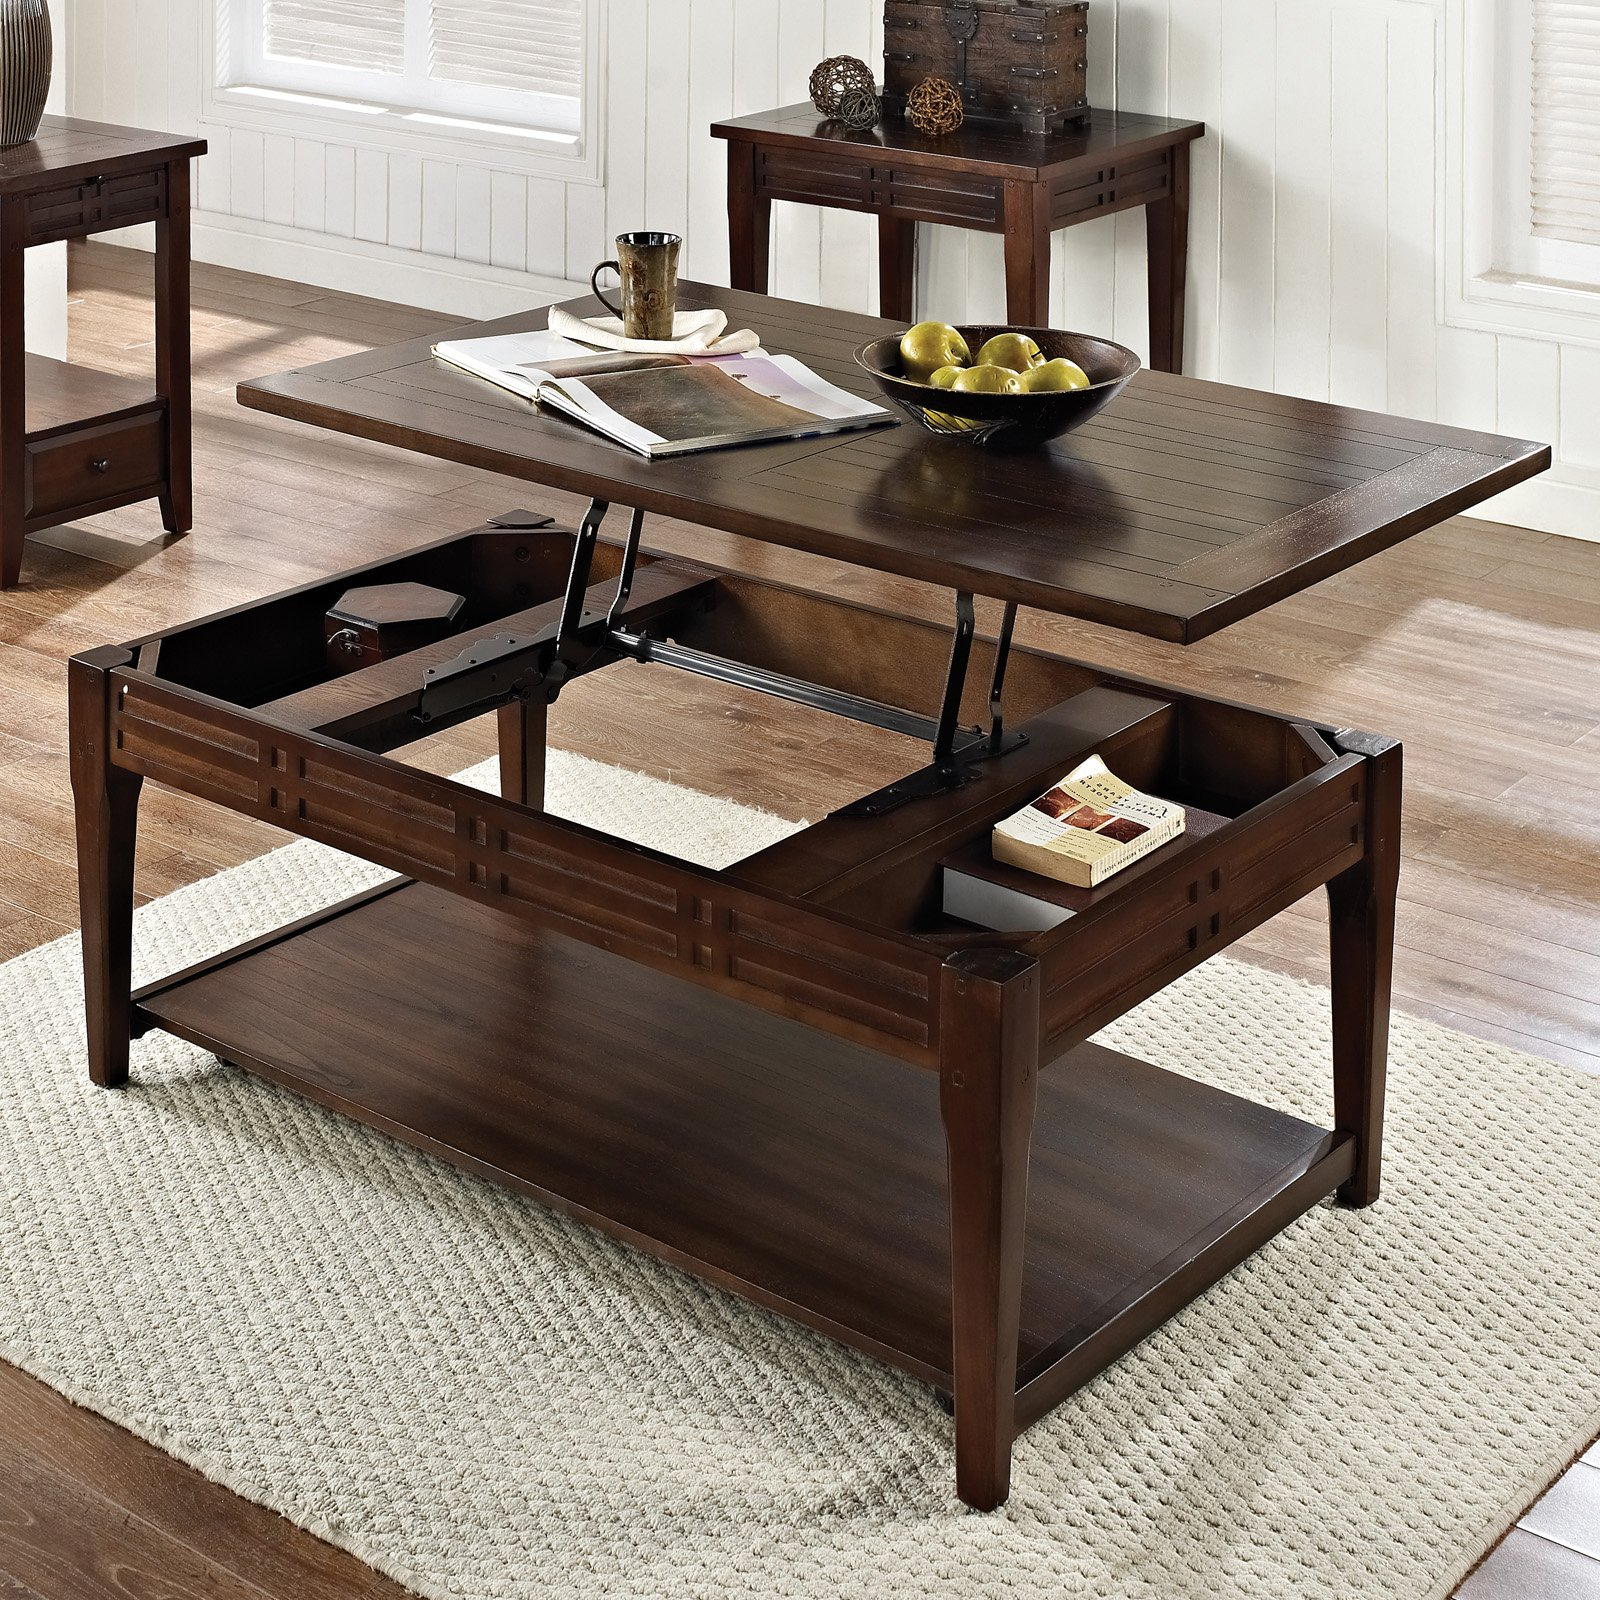 Crestline Lift Top Cocktail Table W/casters – Walmart Within Favorite Shelter Cocktail Tables (Gallery 13 of 20)